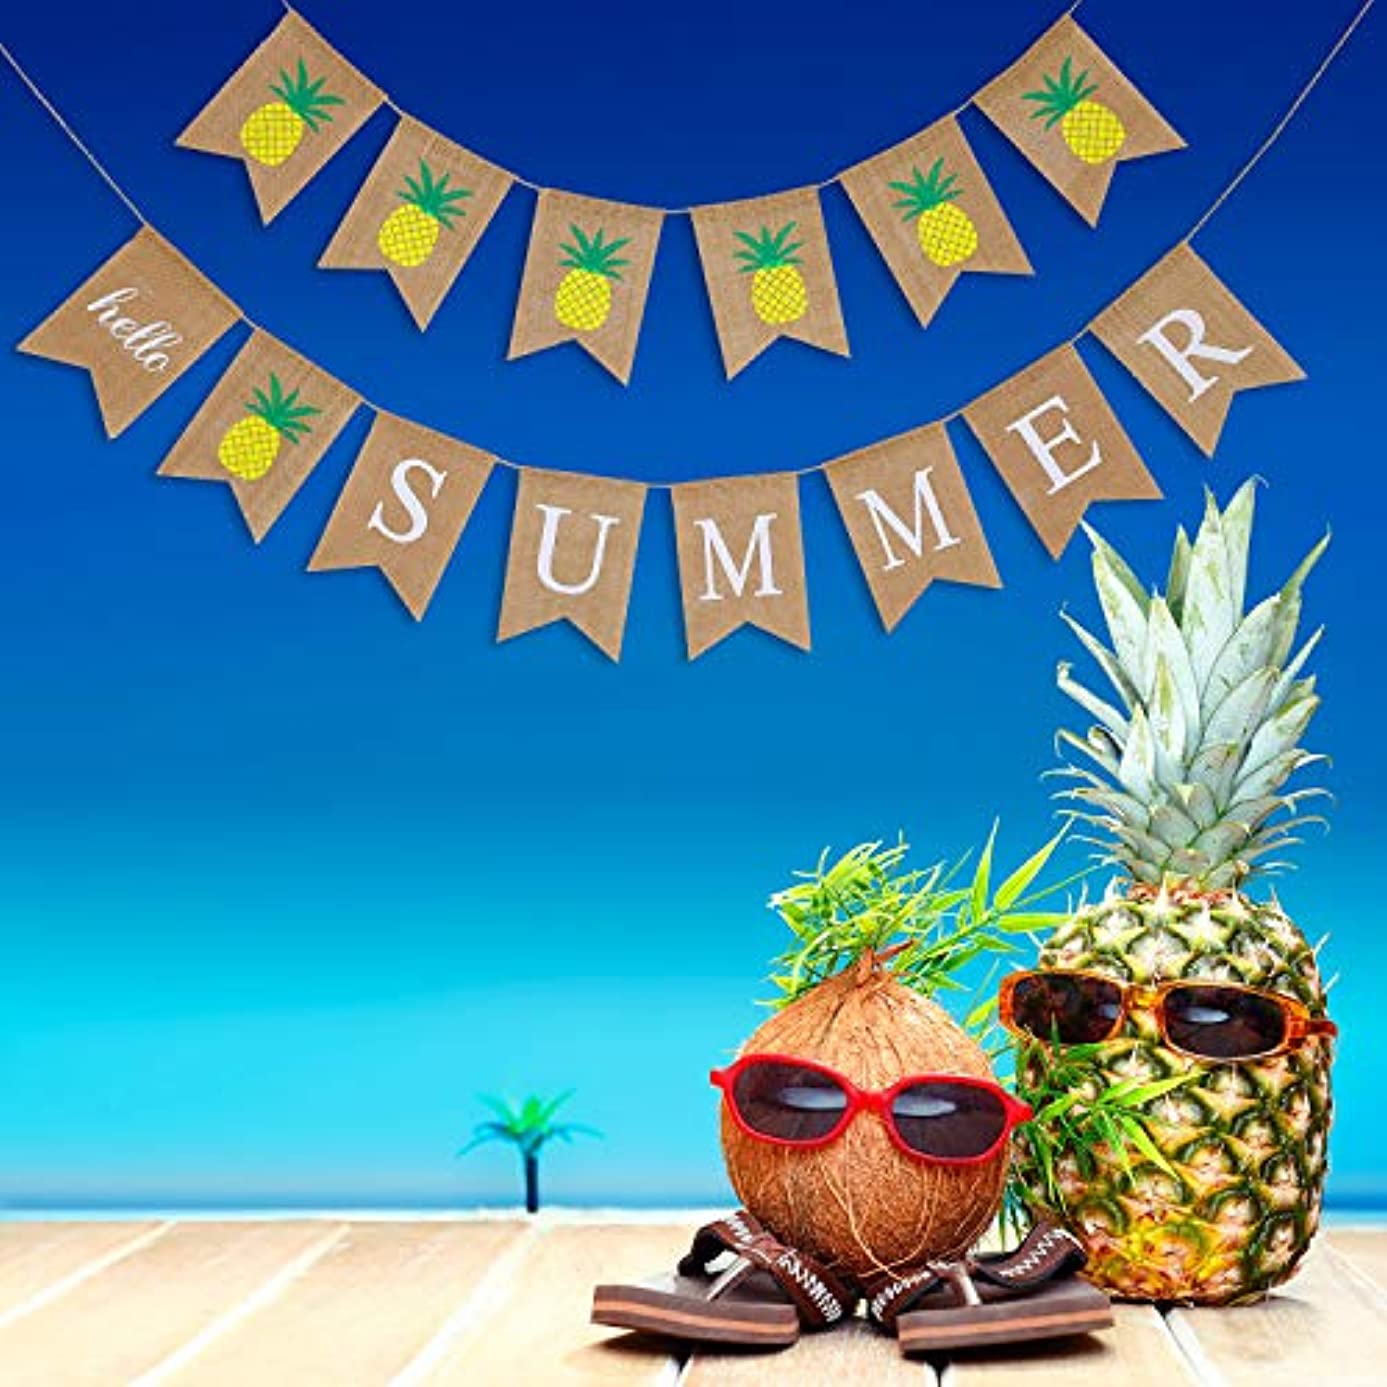 Chinco 2 Pieces Hello Summer Banners Pineapple Sign Burlap Banners Summer Banner Garland Decorations for Summer Hawaiian Pool BBQ Party Supplies